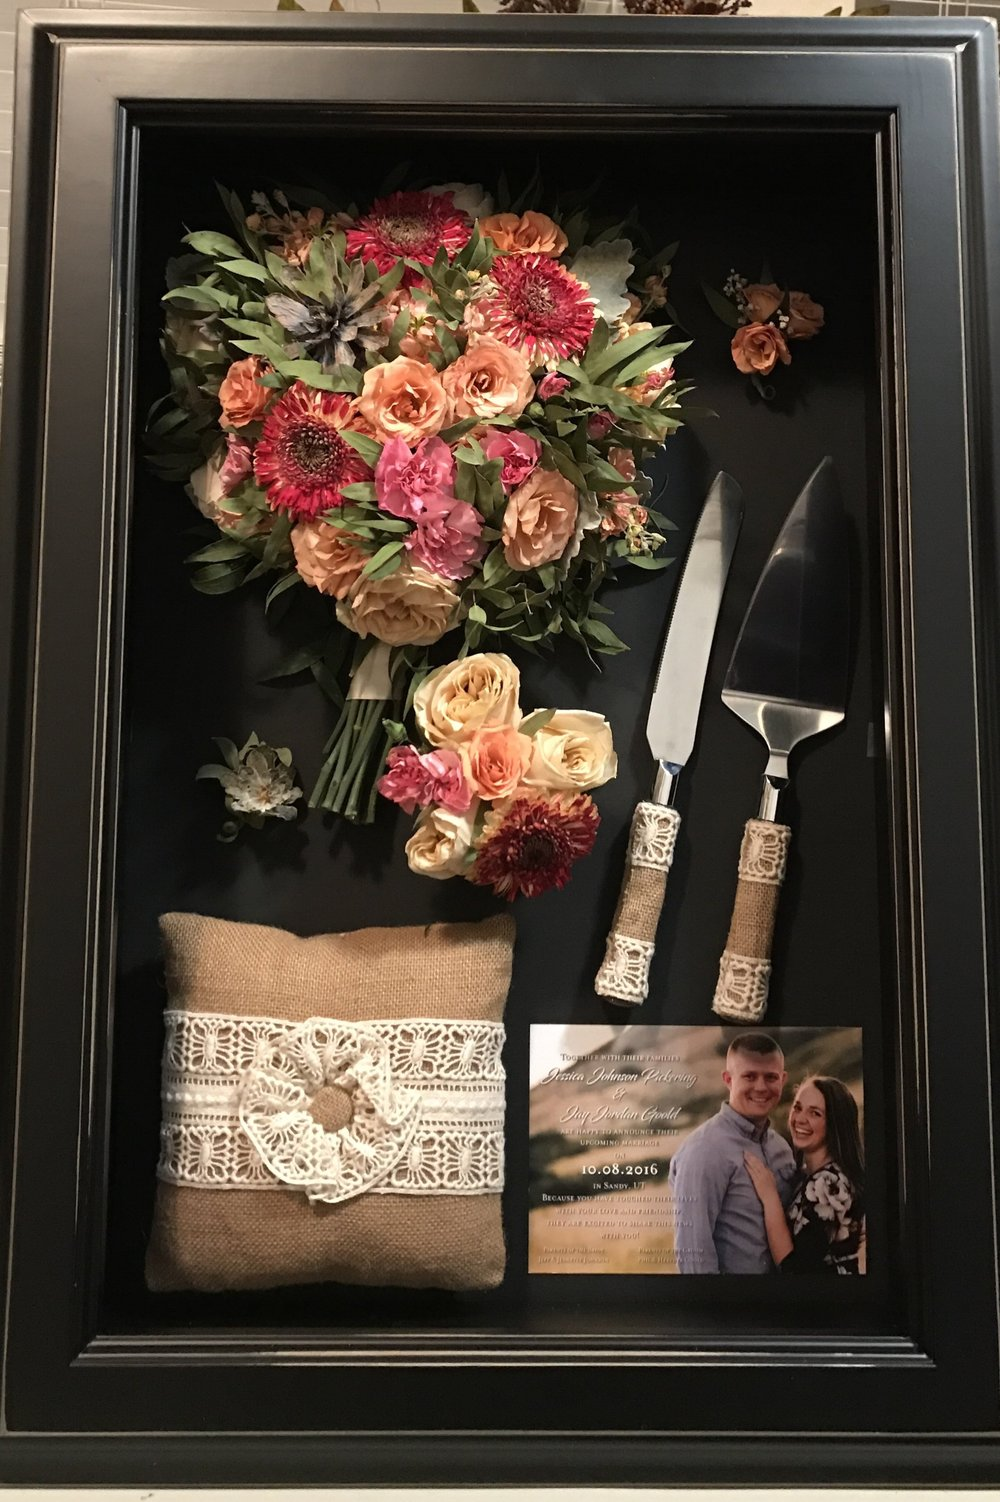 Shadow Box #1 - Extra Large, Rustic